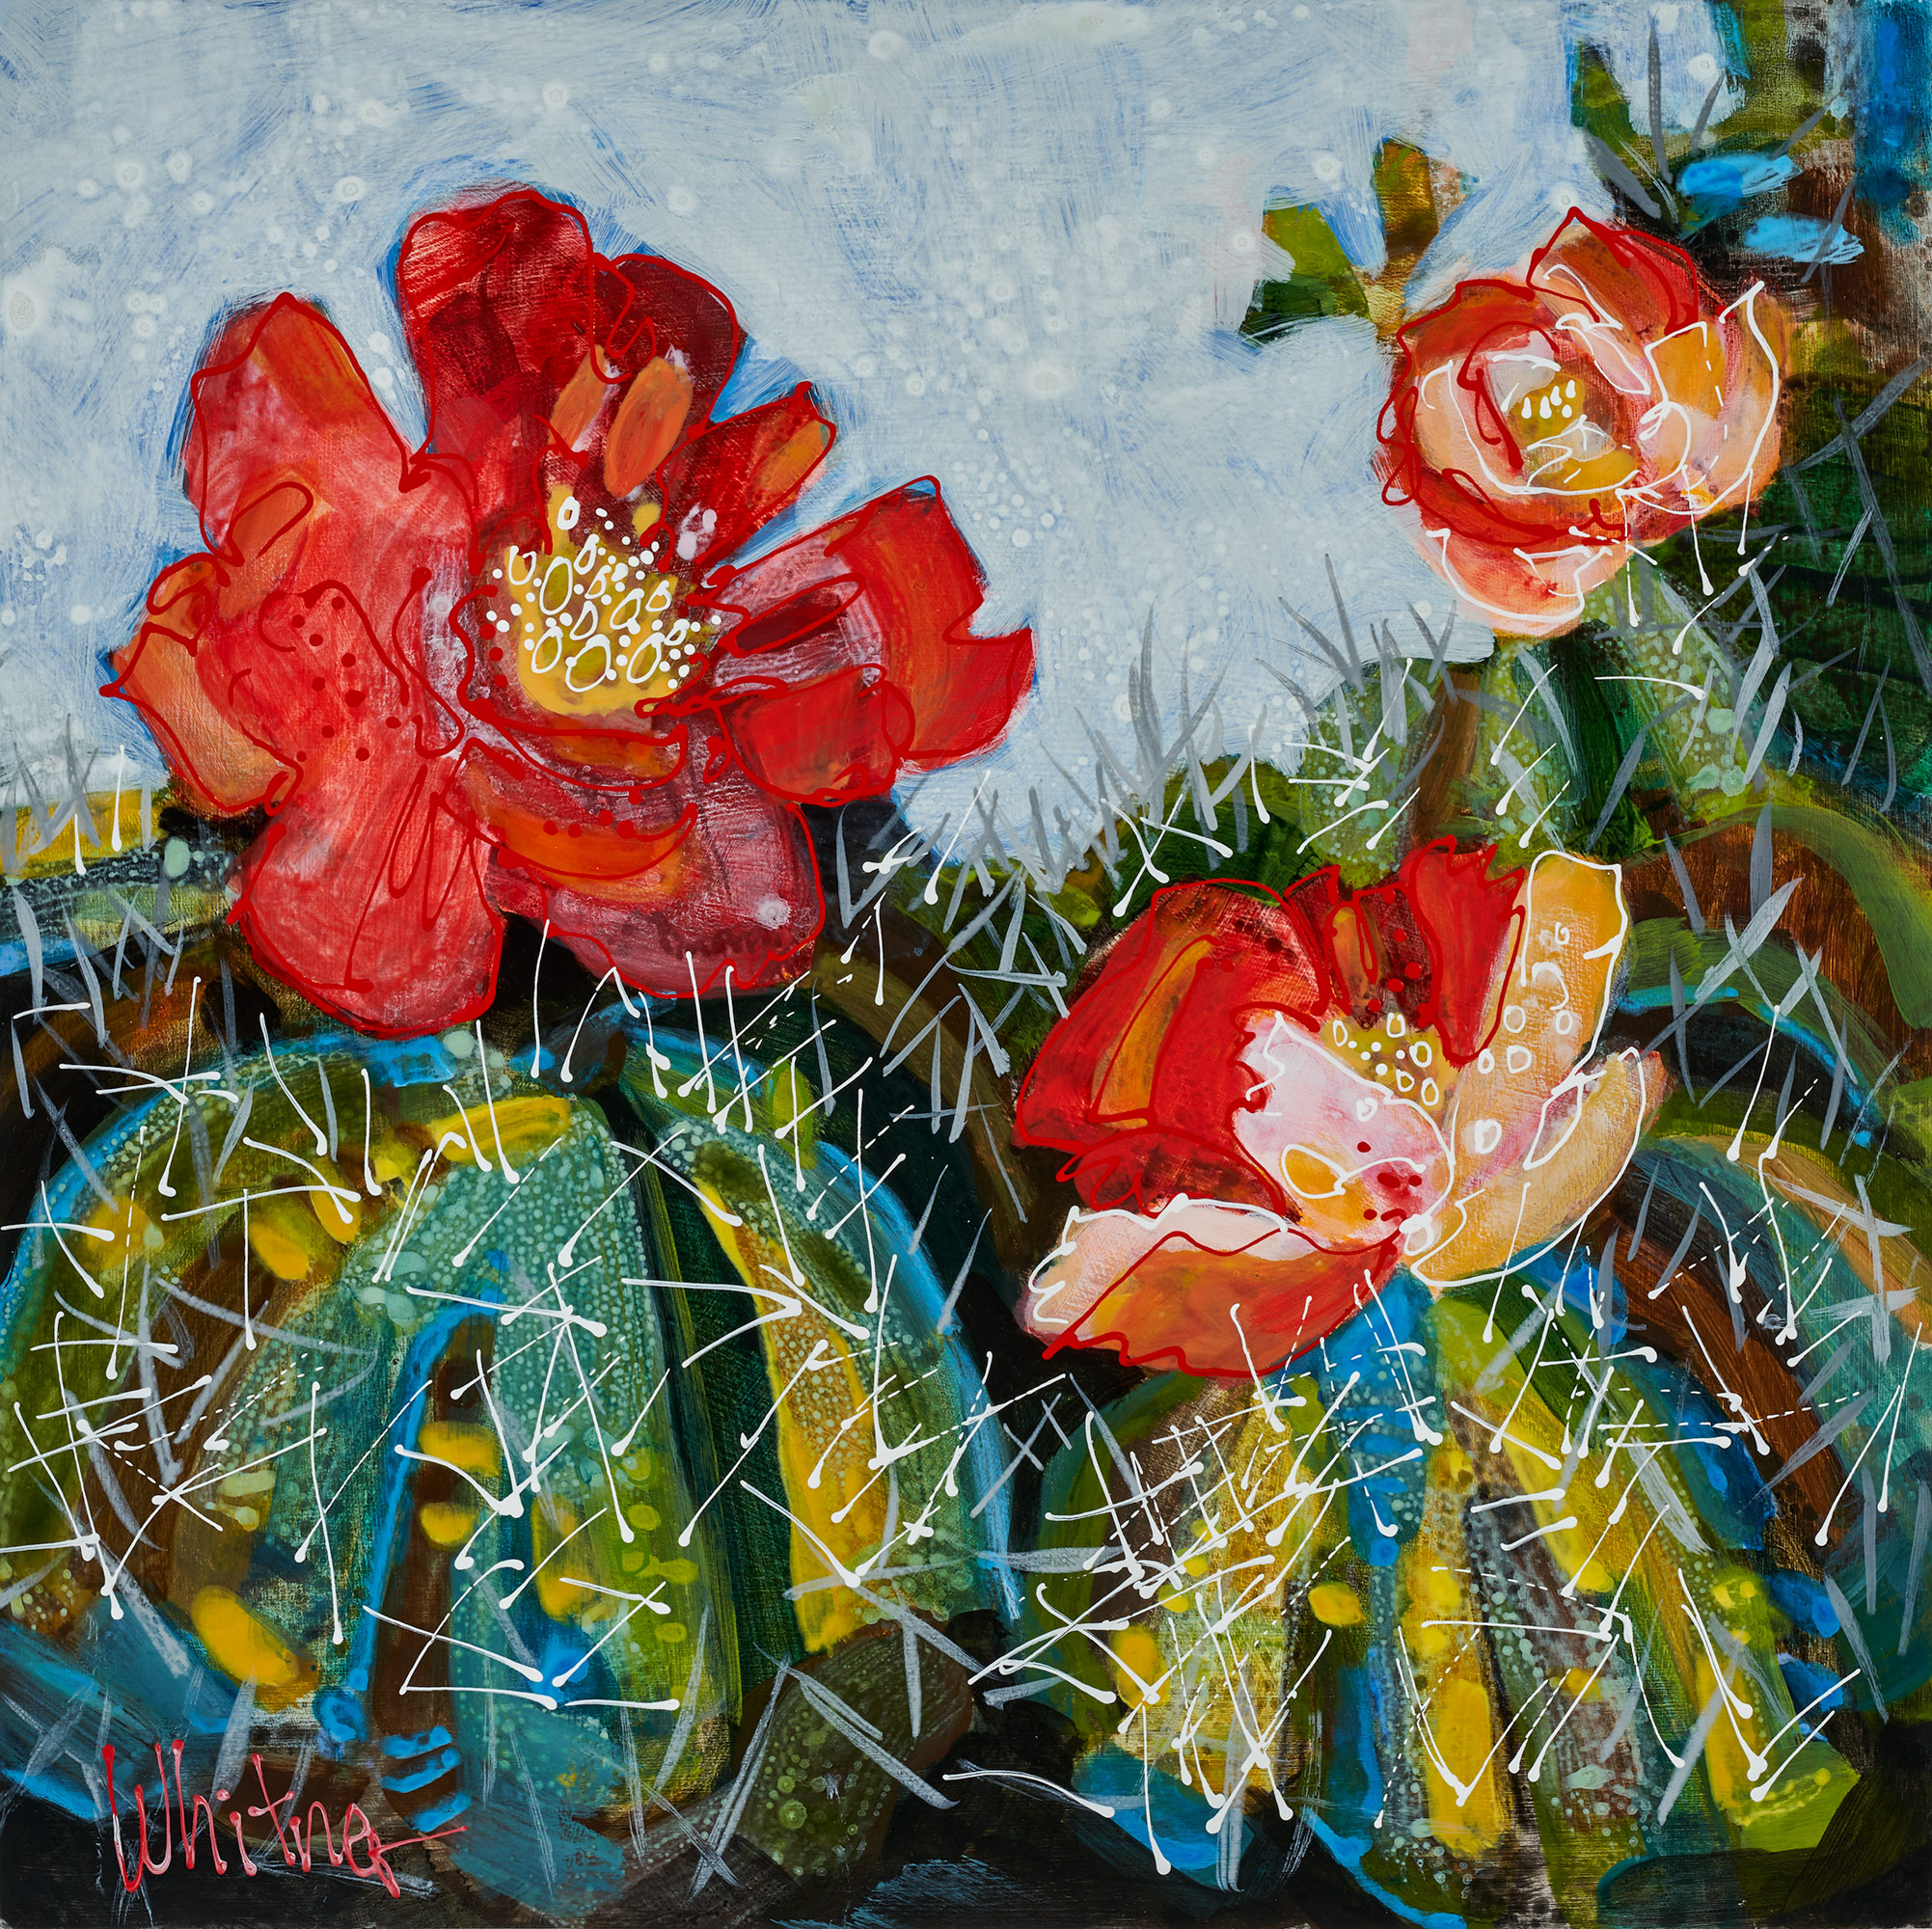 Lance-Whitner-Cactus-Reds-12X12  available at sundancecatalog.com